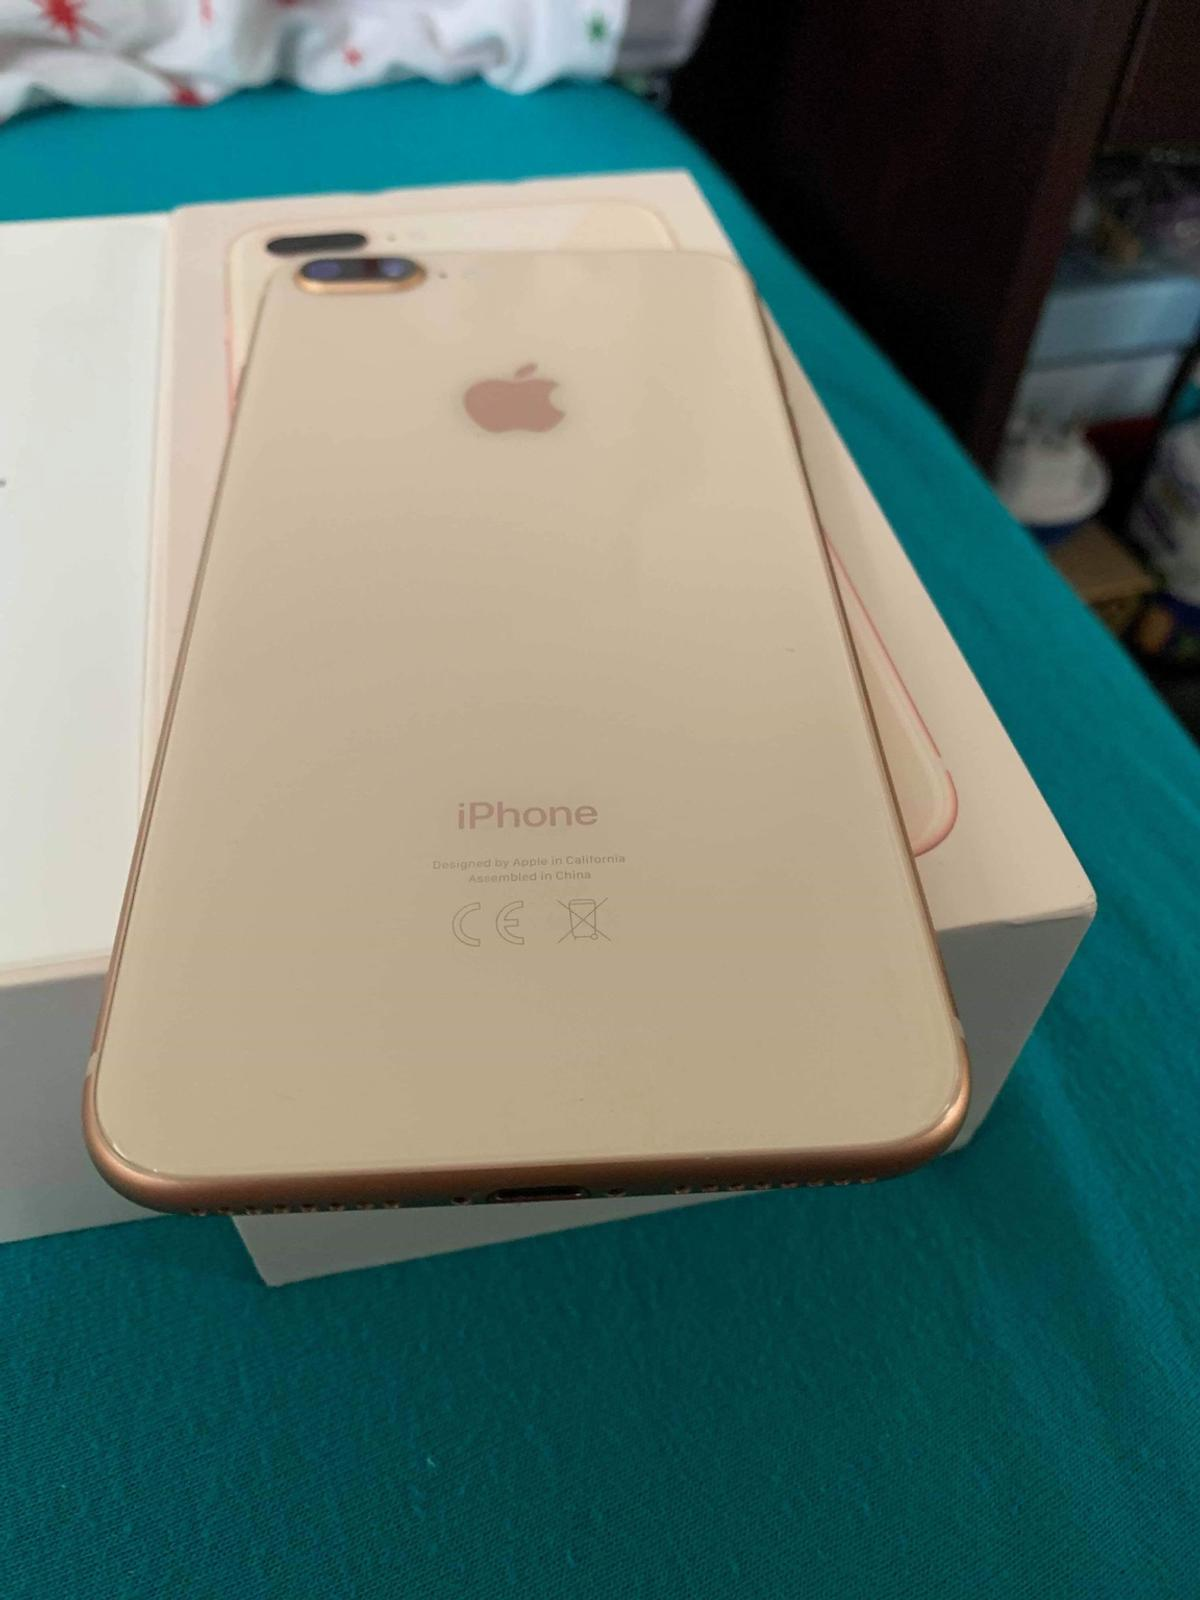 iPhone 8plus 64gb gold in RM15 Purfleet for £400 00 for sale